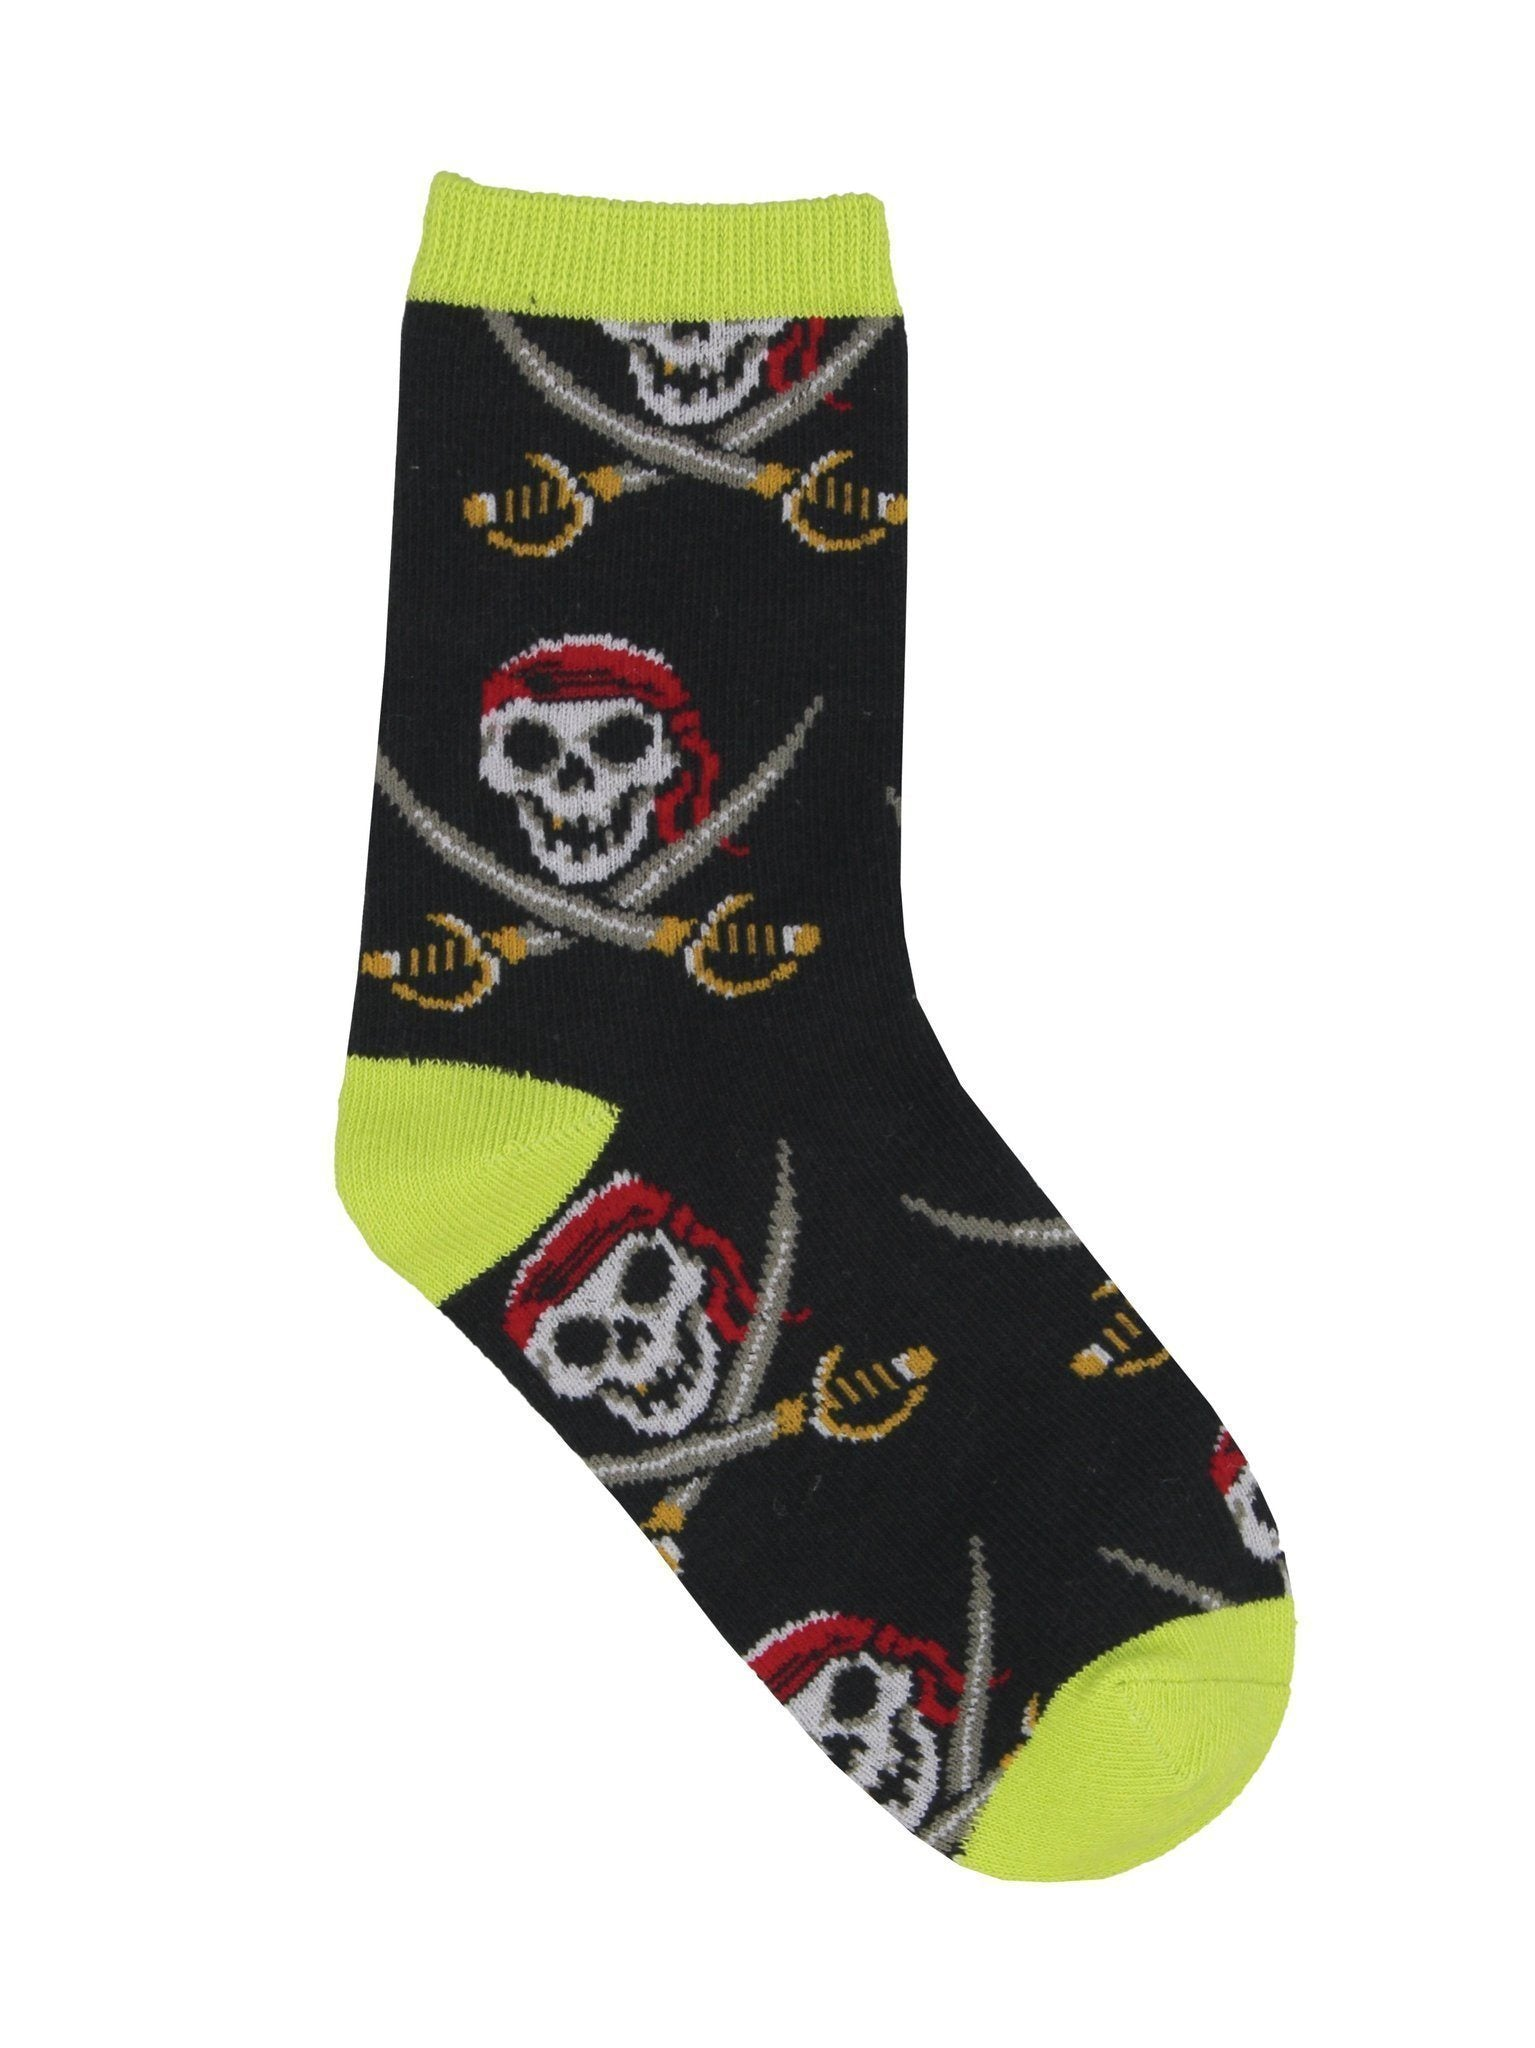 Socksmith - Ahoy Matey! Crew Socks | Kids' - Knock Your Socks Off